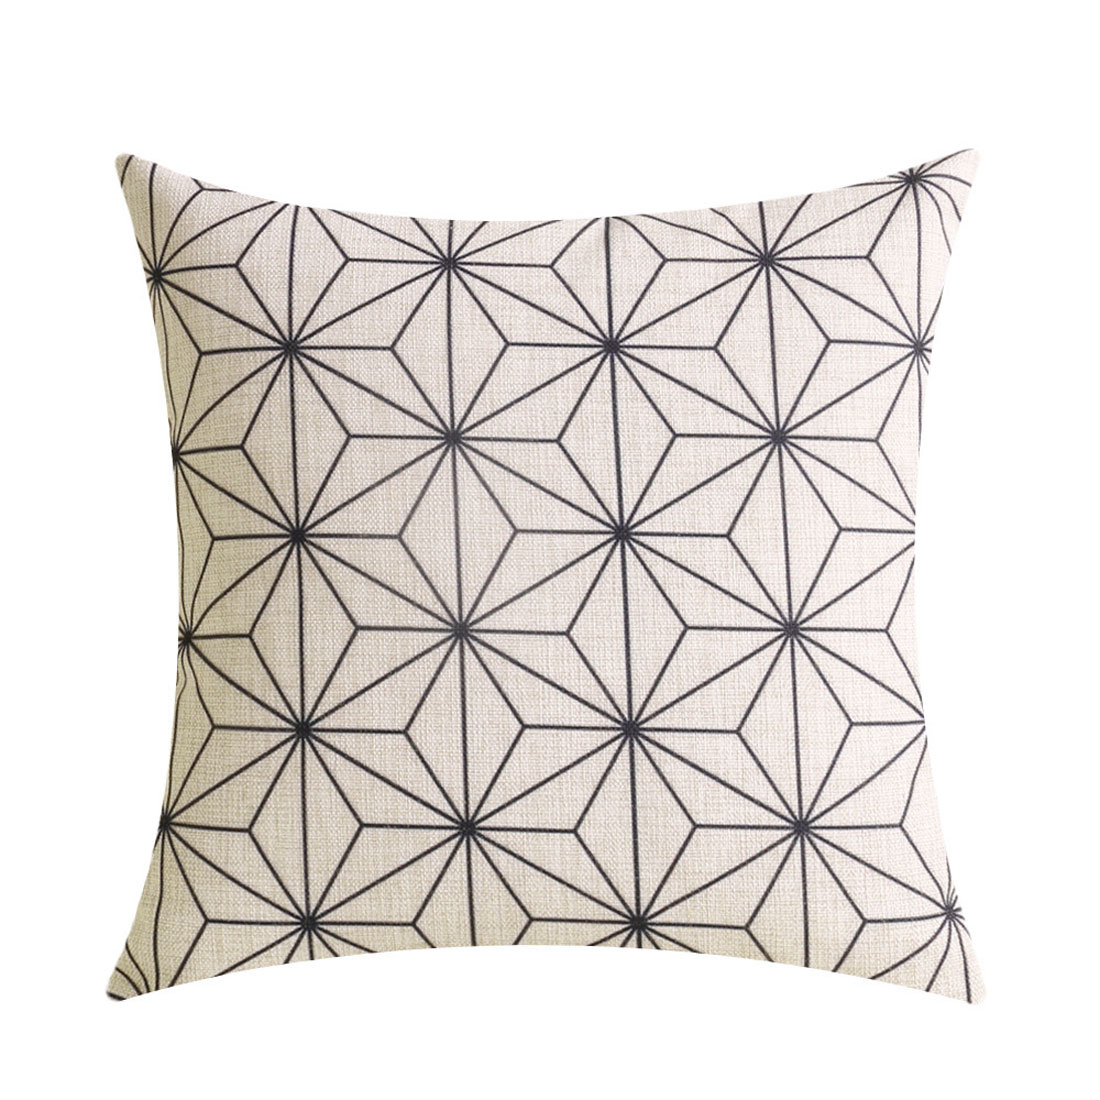 Sofa Cotton Linen Geometric Pattern Square Design Waist Throw Cushion Cover Pillow Case